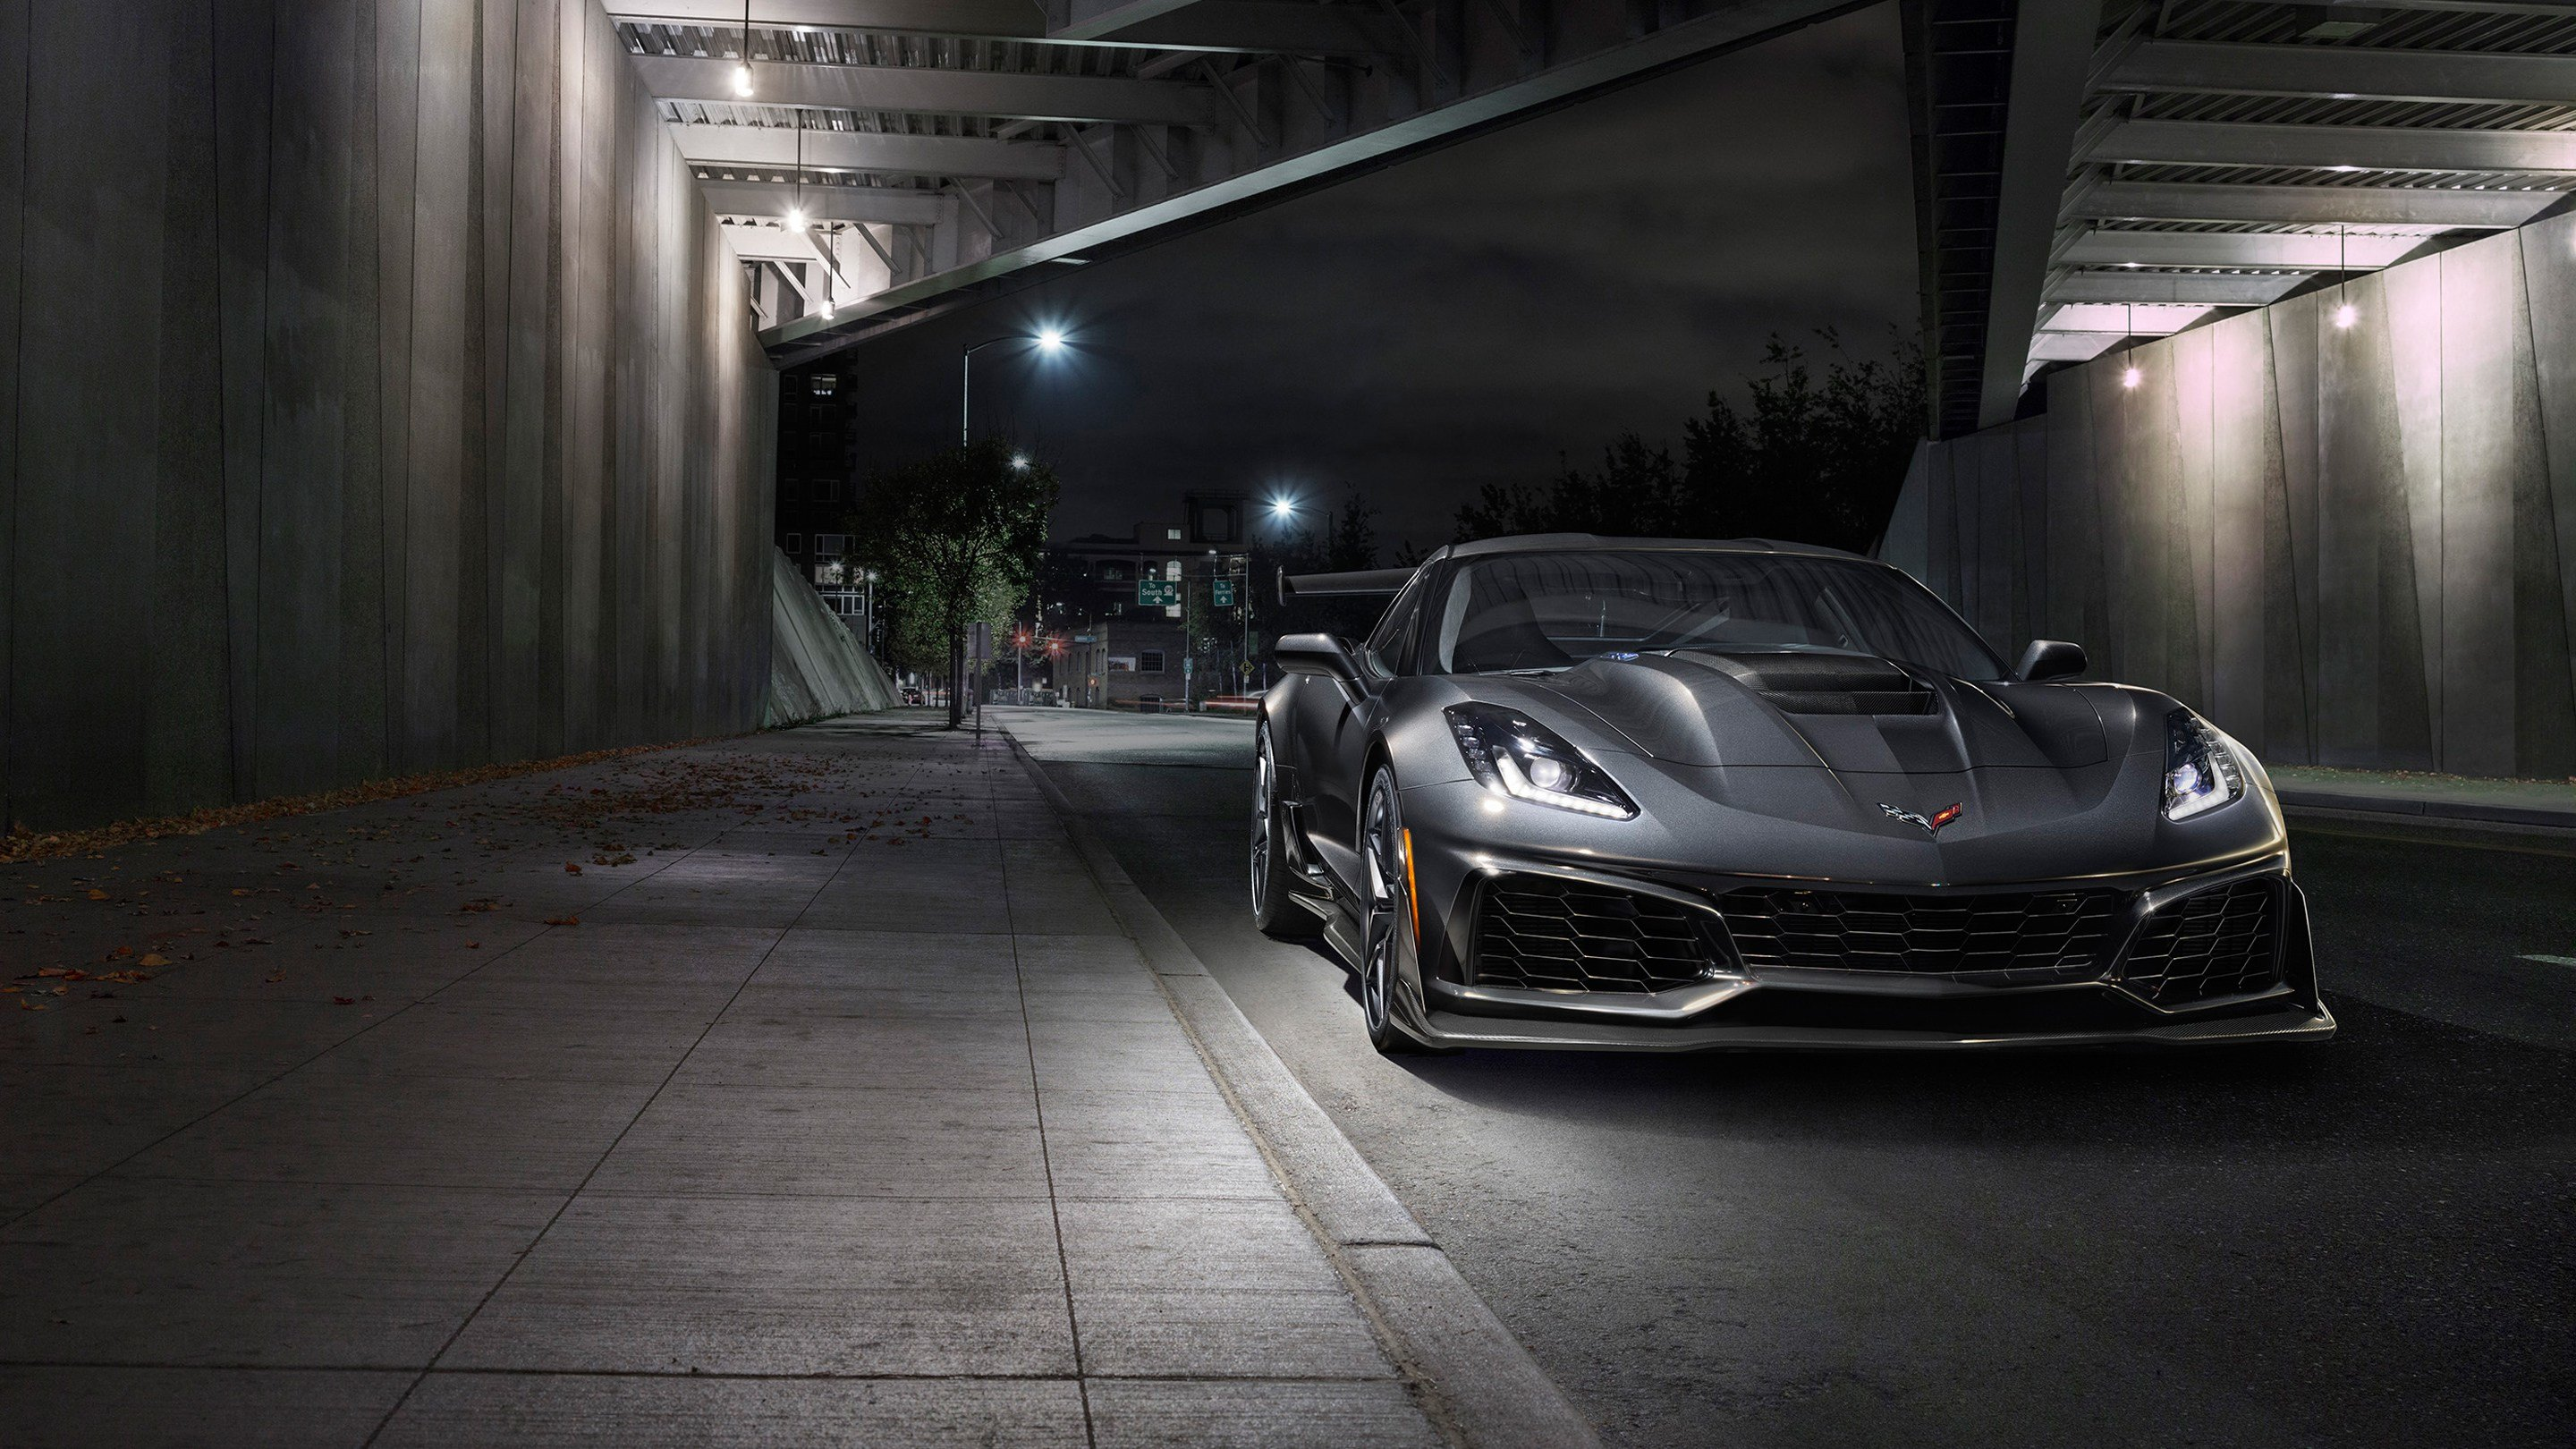 New 2019 Chevrolet Corvette Zr1 Wallpaper Hd Car Wallpapers On This Month